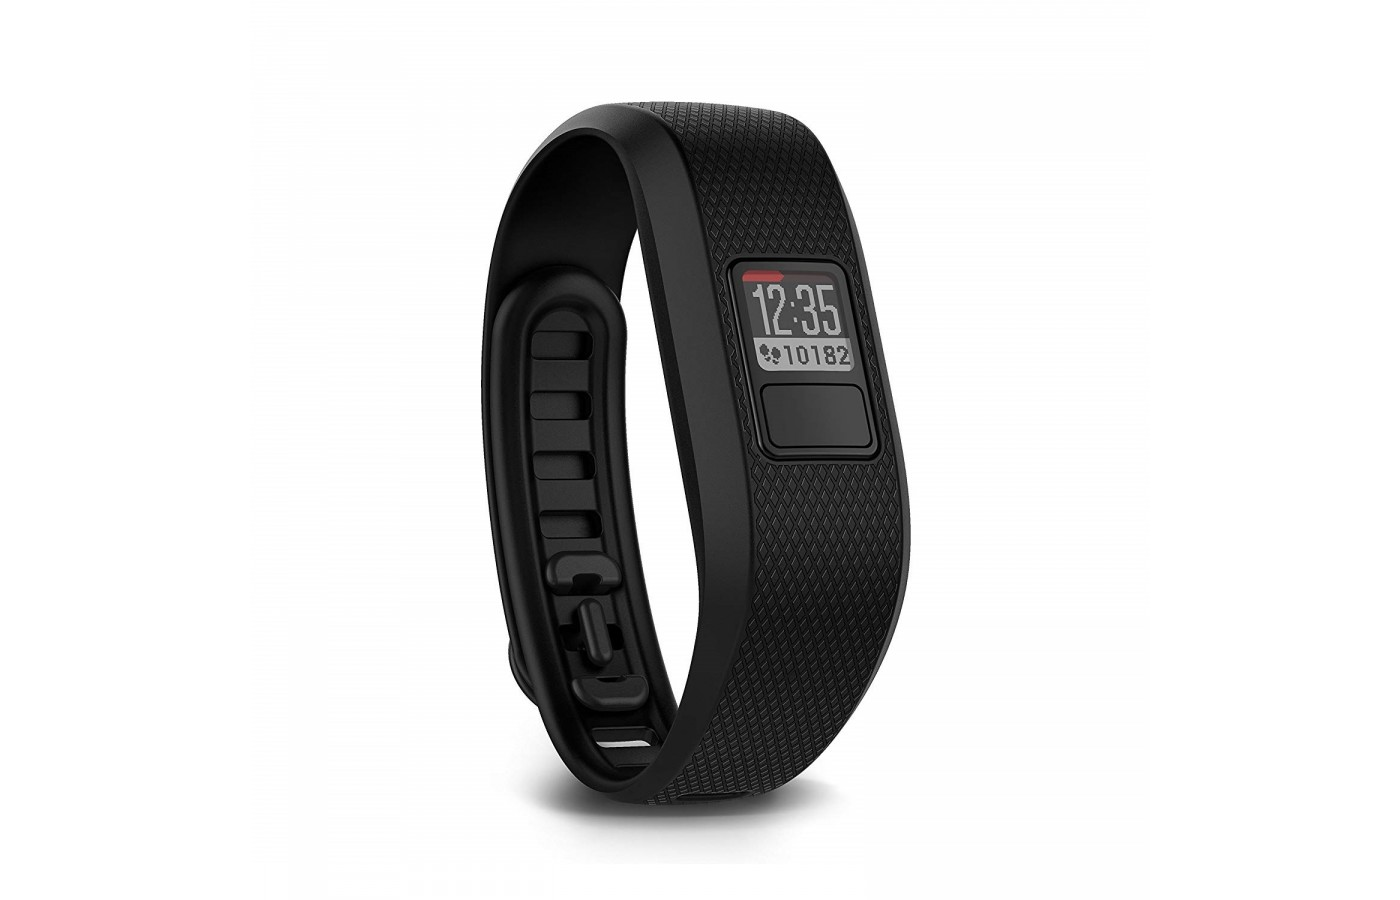 The Garmin Vivofit 3 counts steps, calories and distance for better tracking.